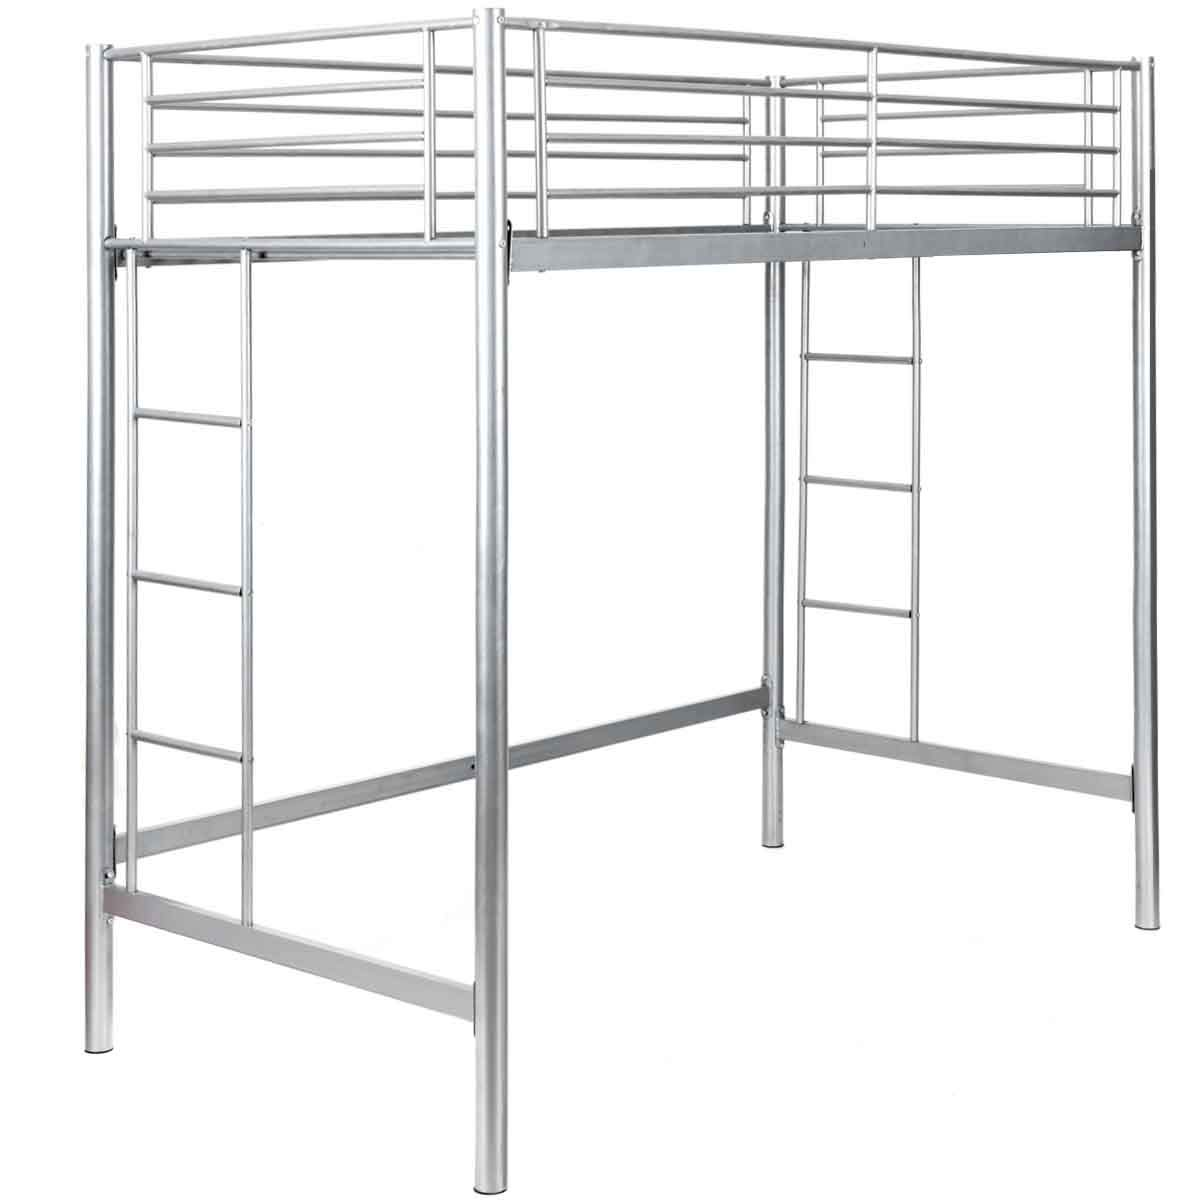 Safstar Metal Twin Loft Beds for Kids